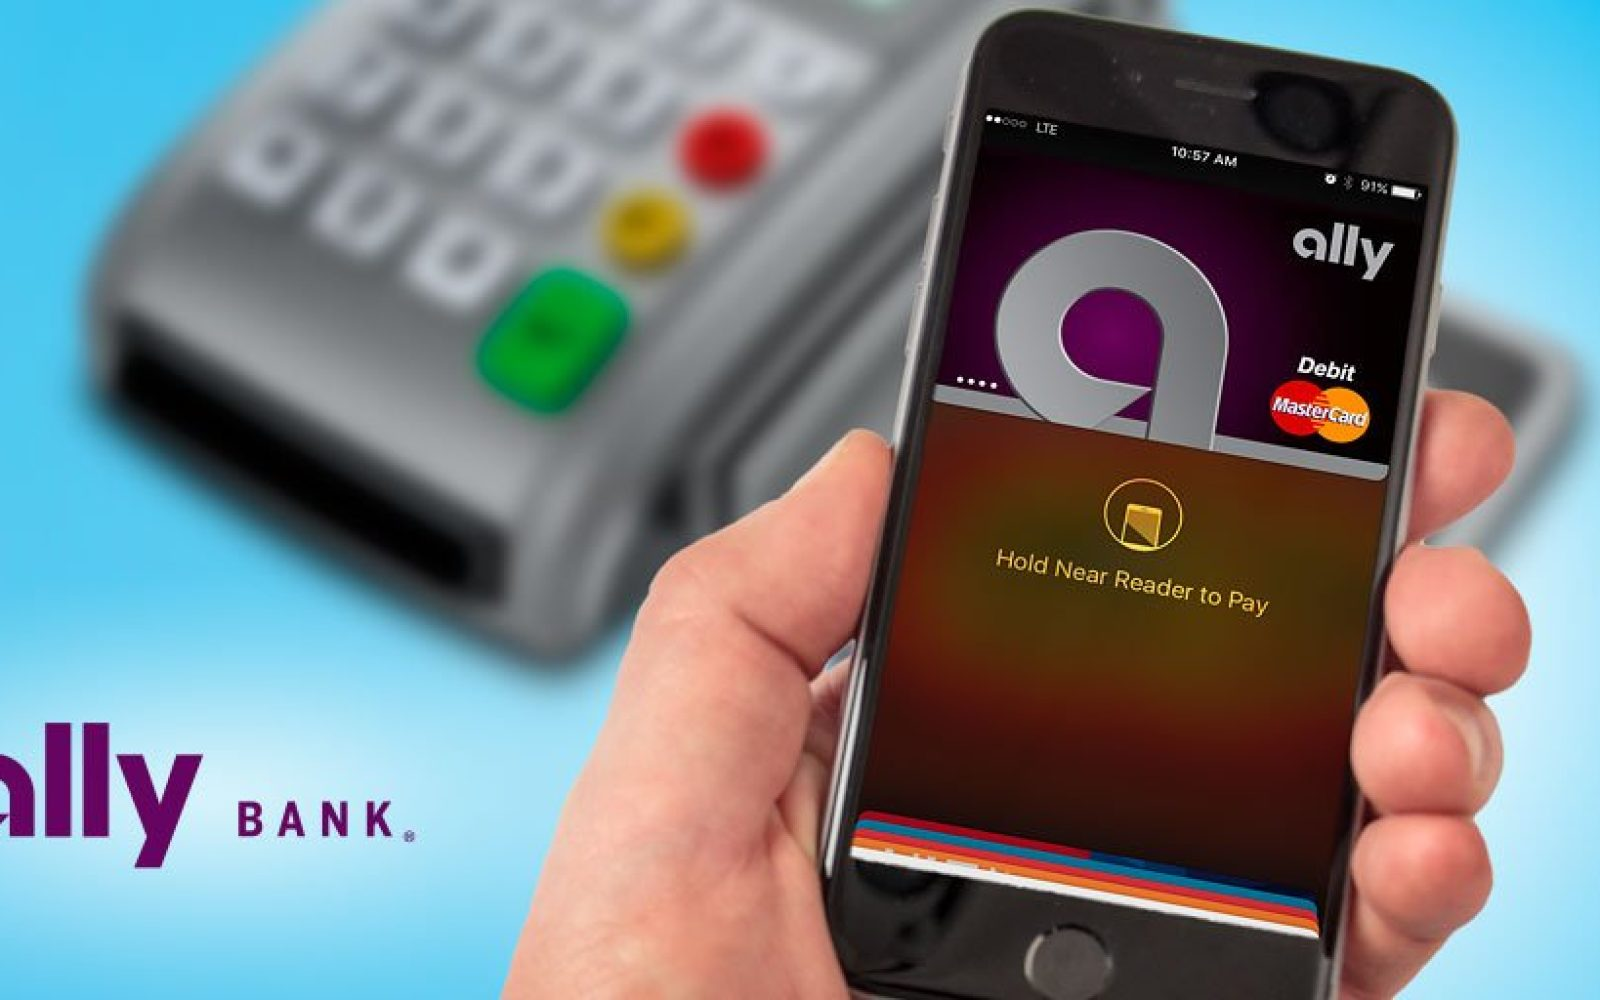 Longtime holdout Ally Bank turns on Apple Pay for customers